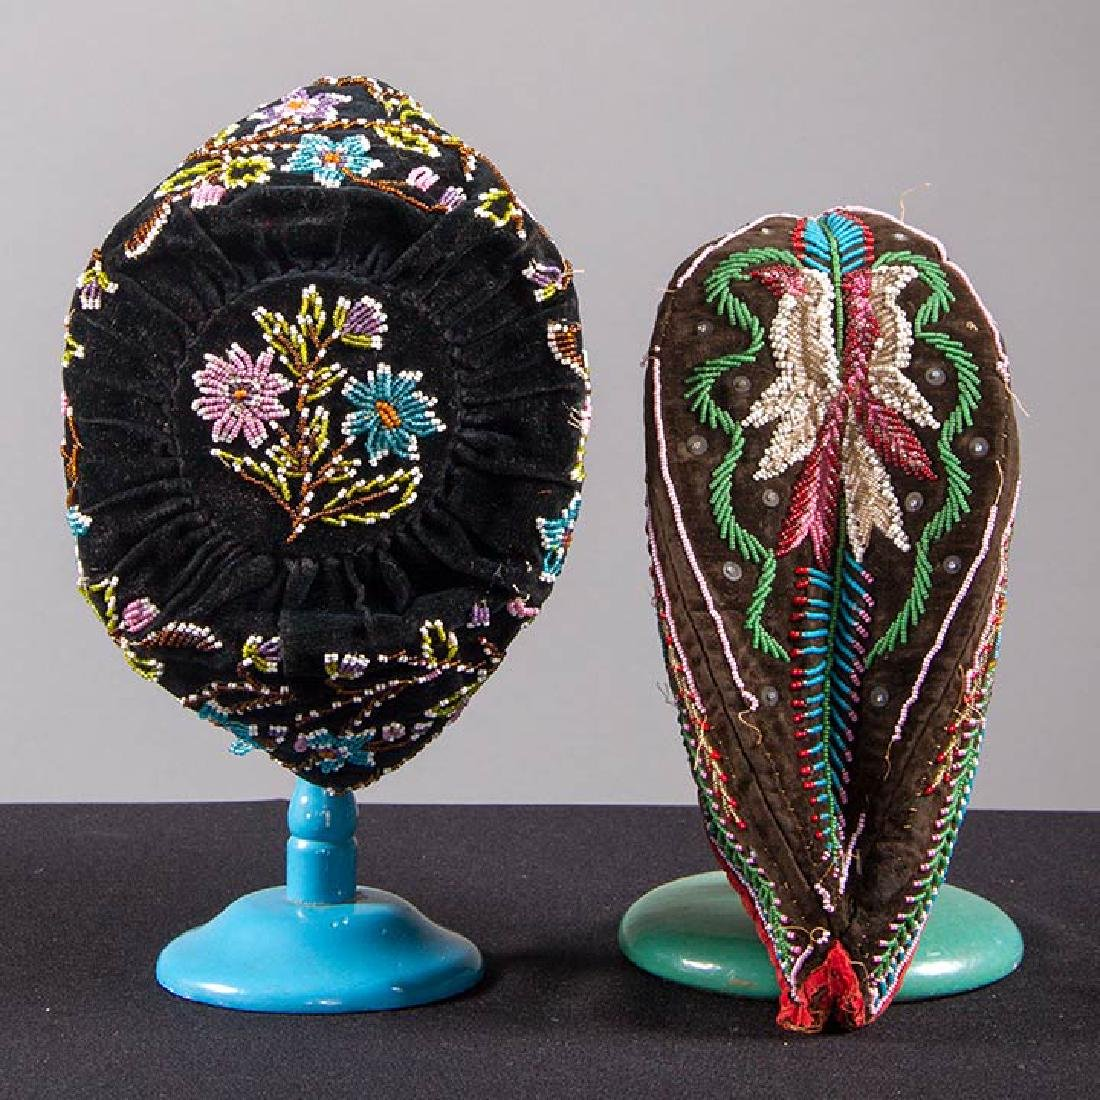 4 NATIVE AMERICAN BEADED ACCESSORIES, MID 19TH C - 2